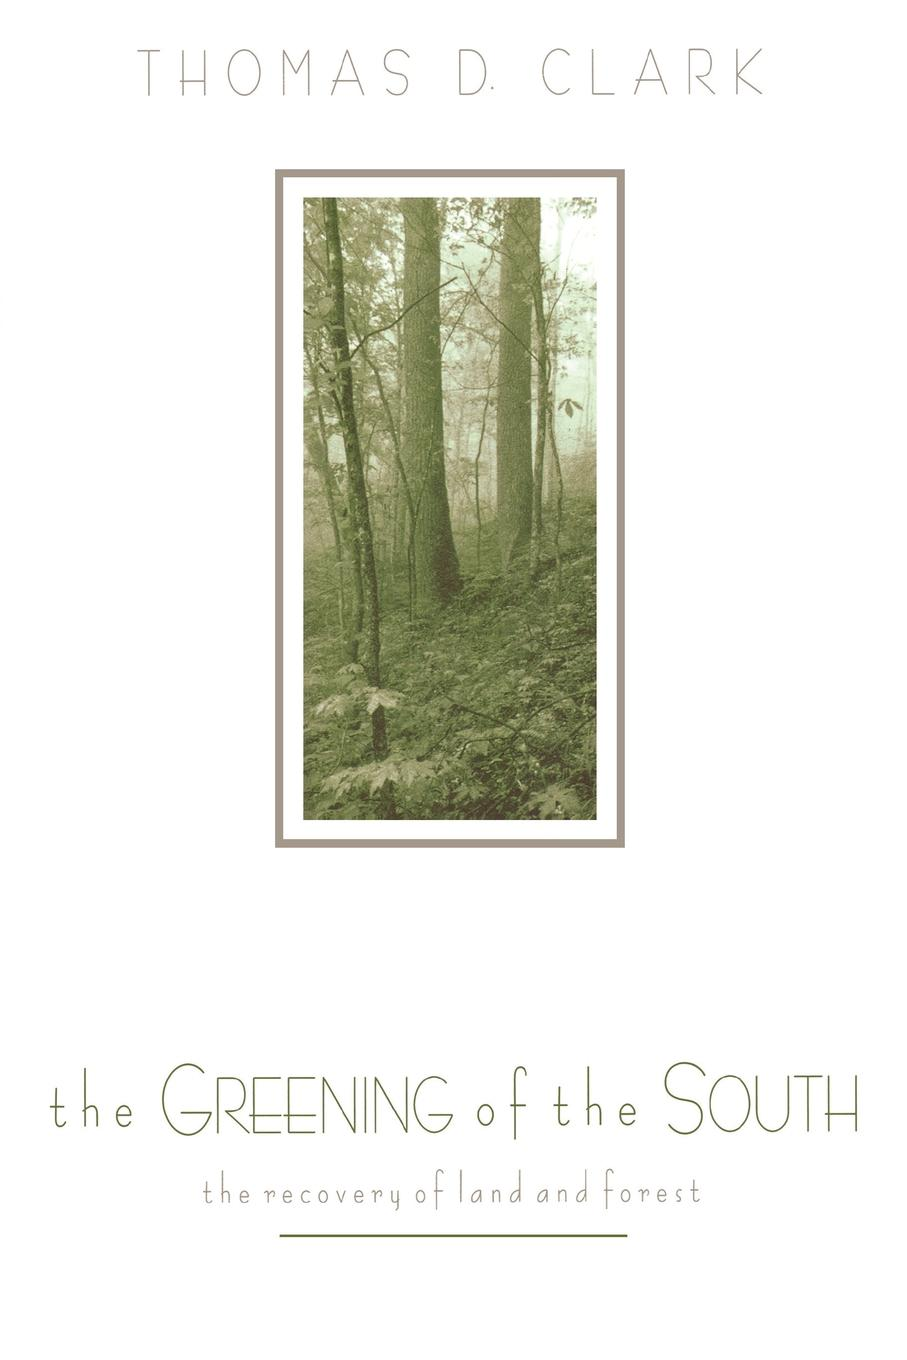 The Greening of the South